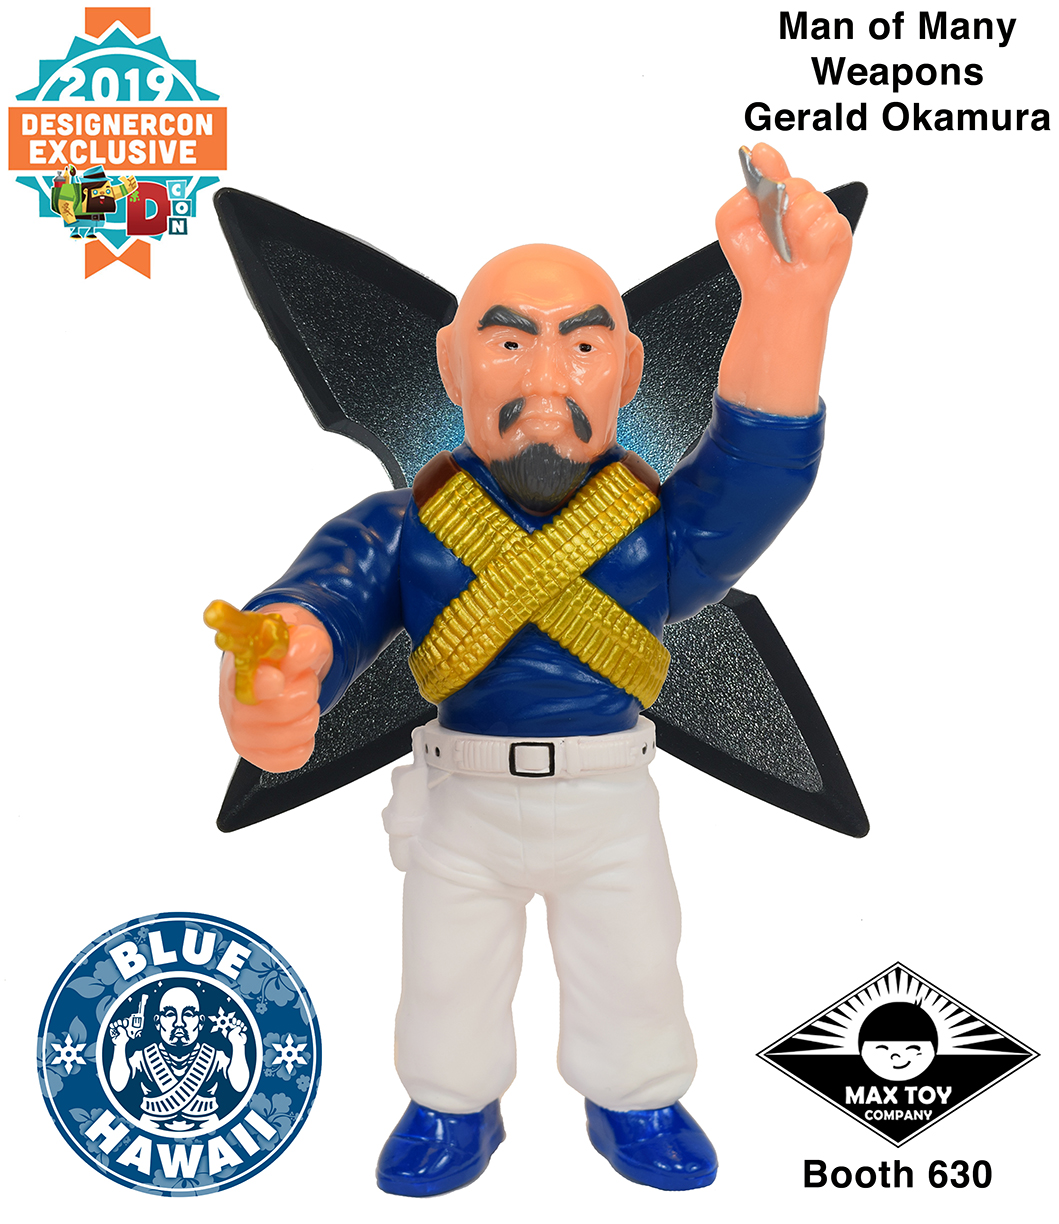 Dcon 2019 Man of Many Weapons Gerald Okamura exclusive